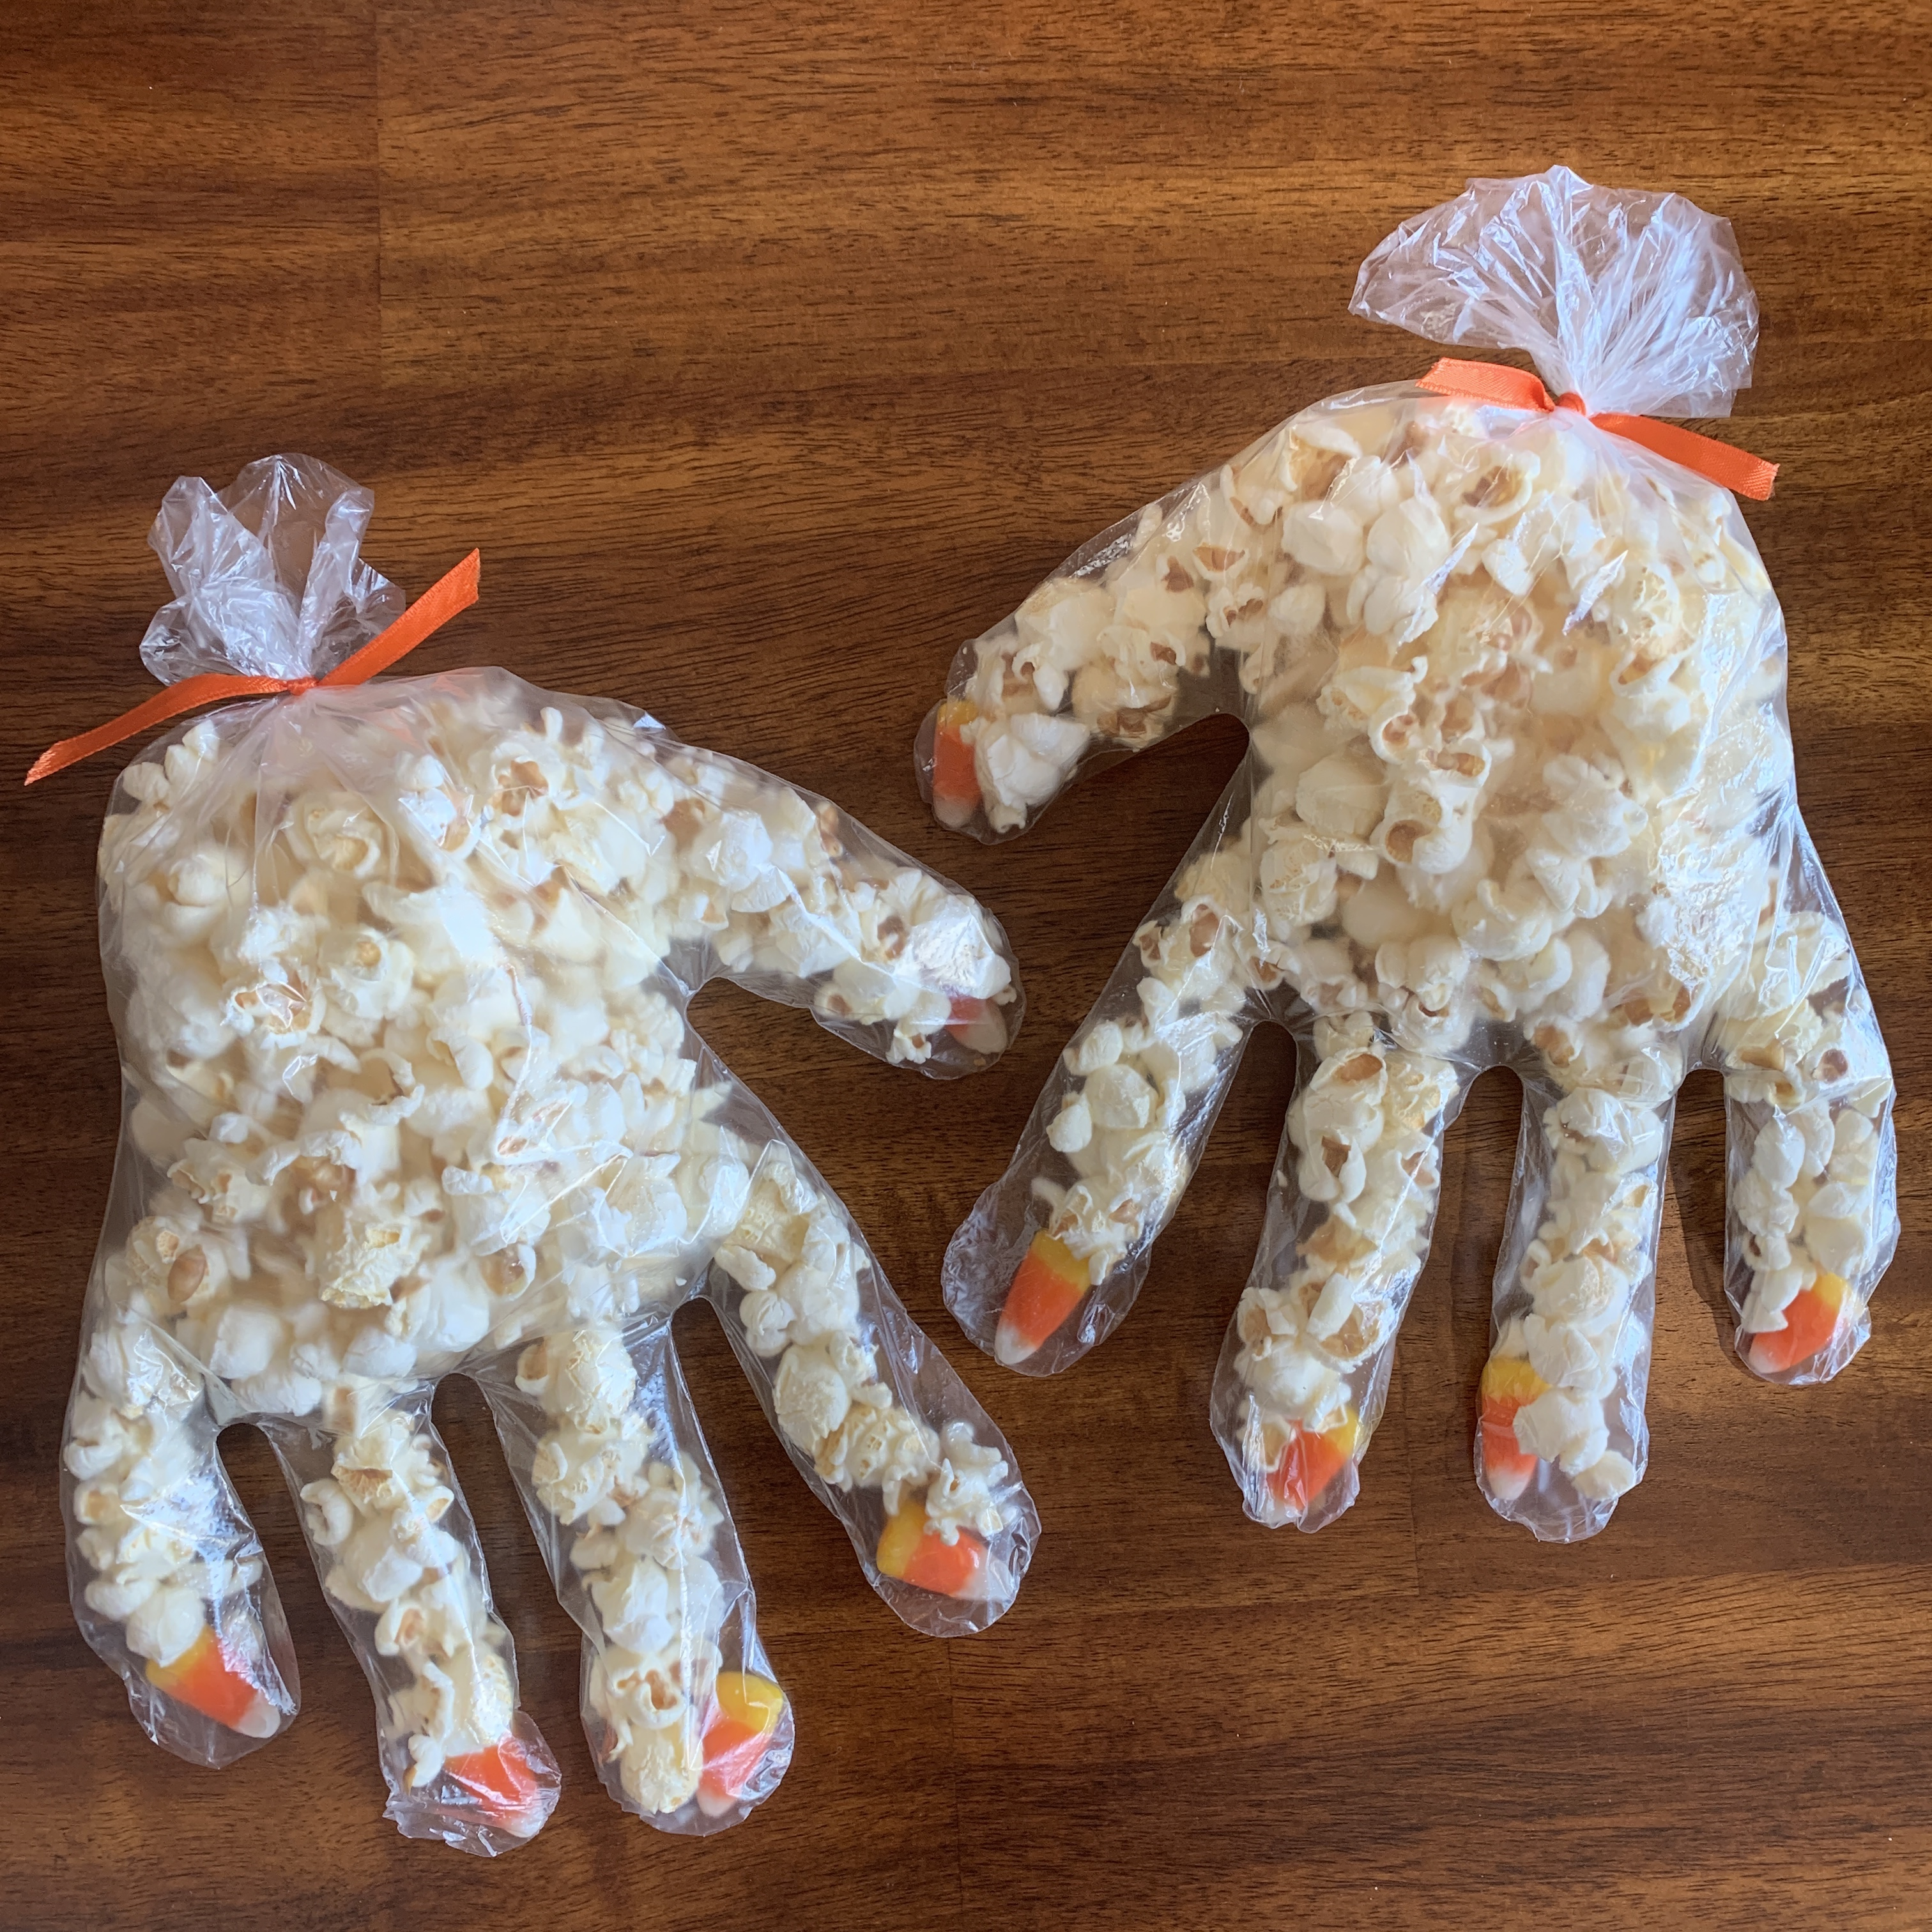 food safe plastic glove with a candy corn for each fingernail and filled with popcorn